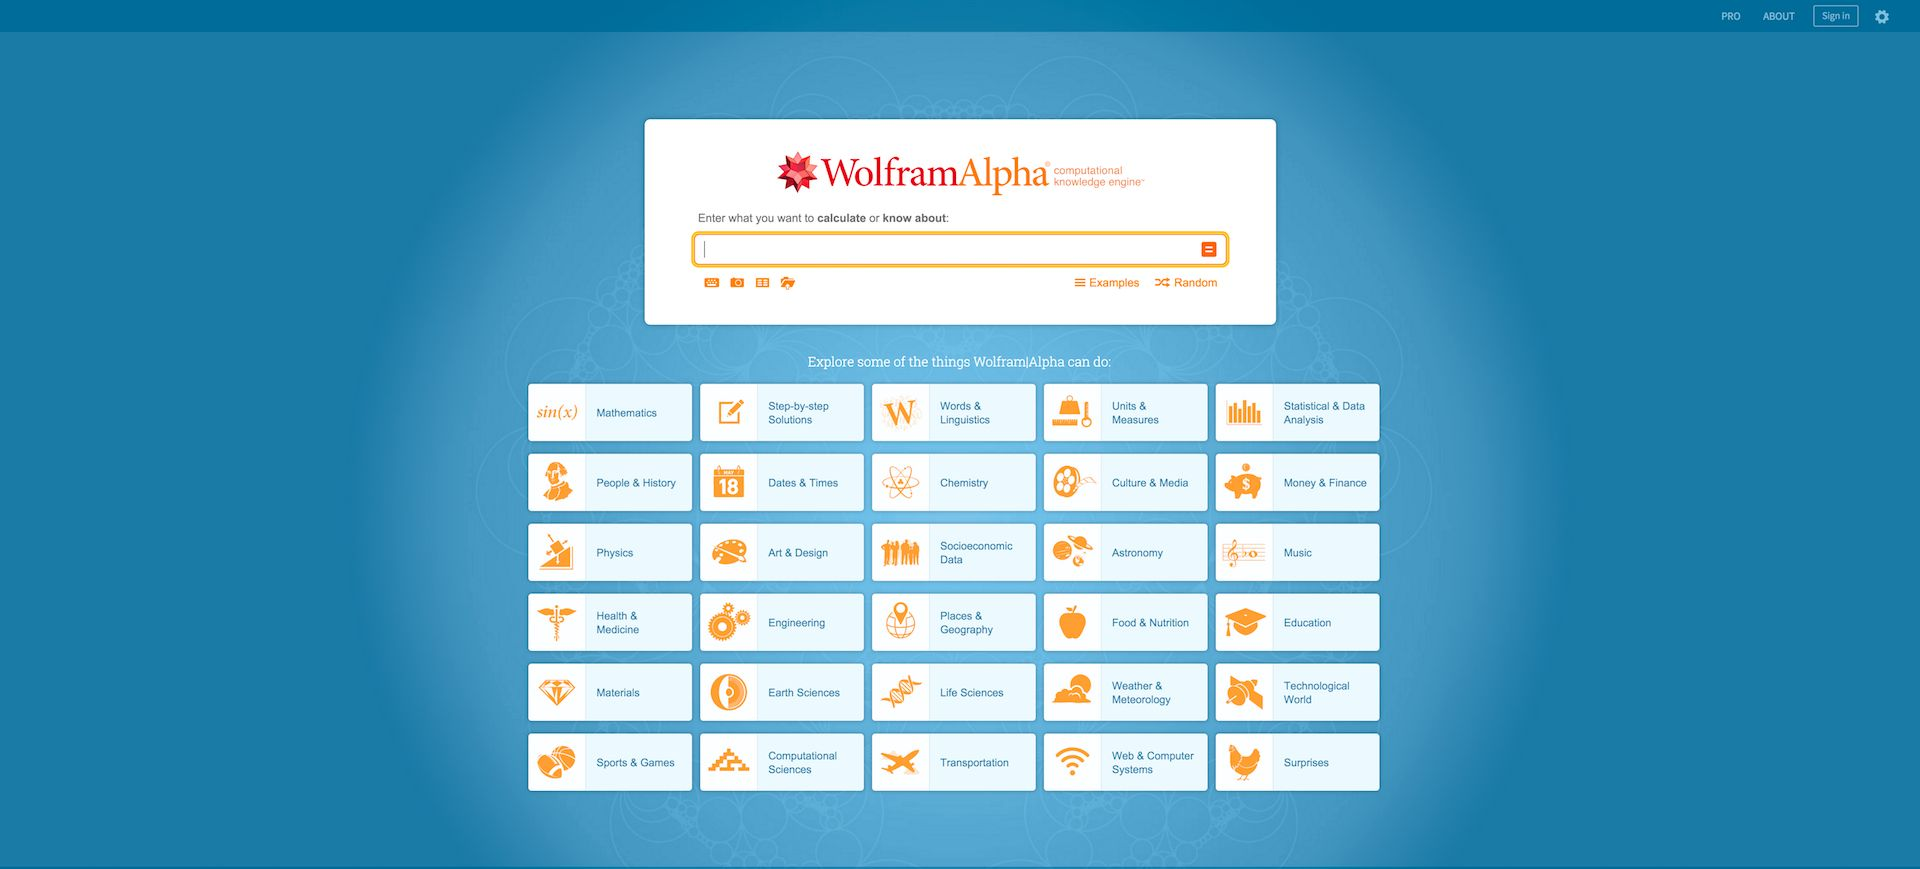 wolfram alpha screen